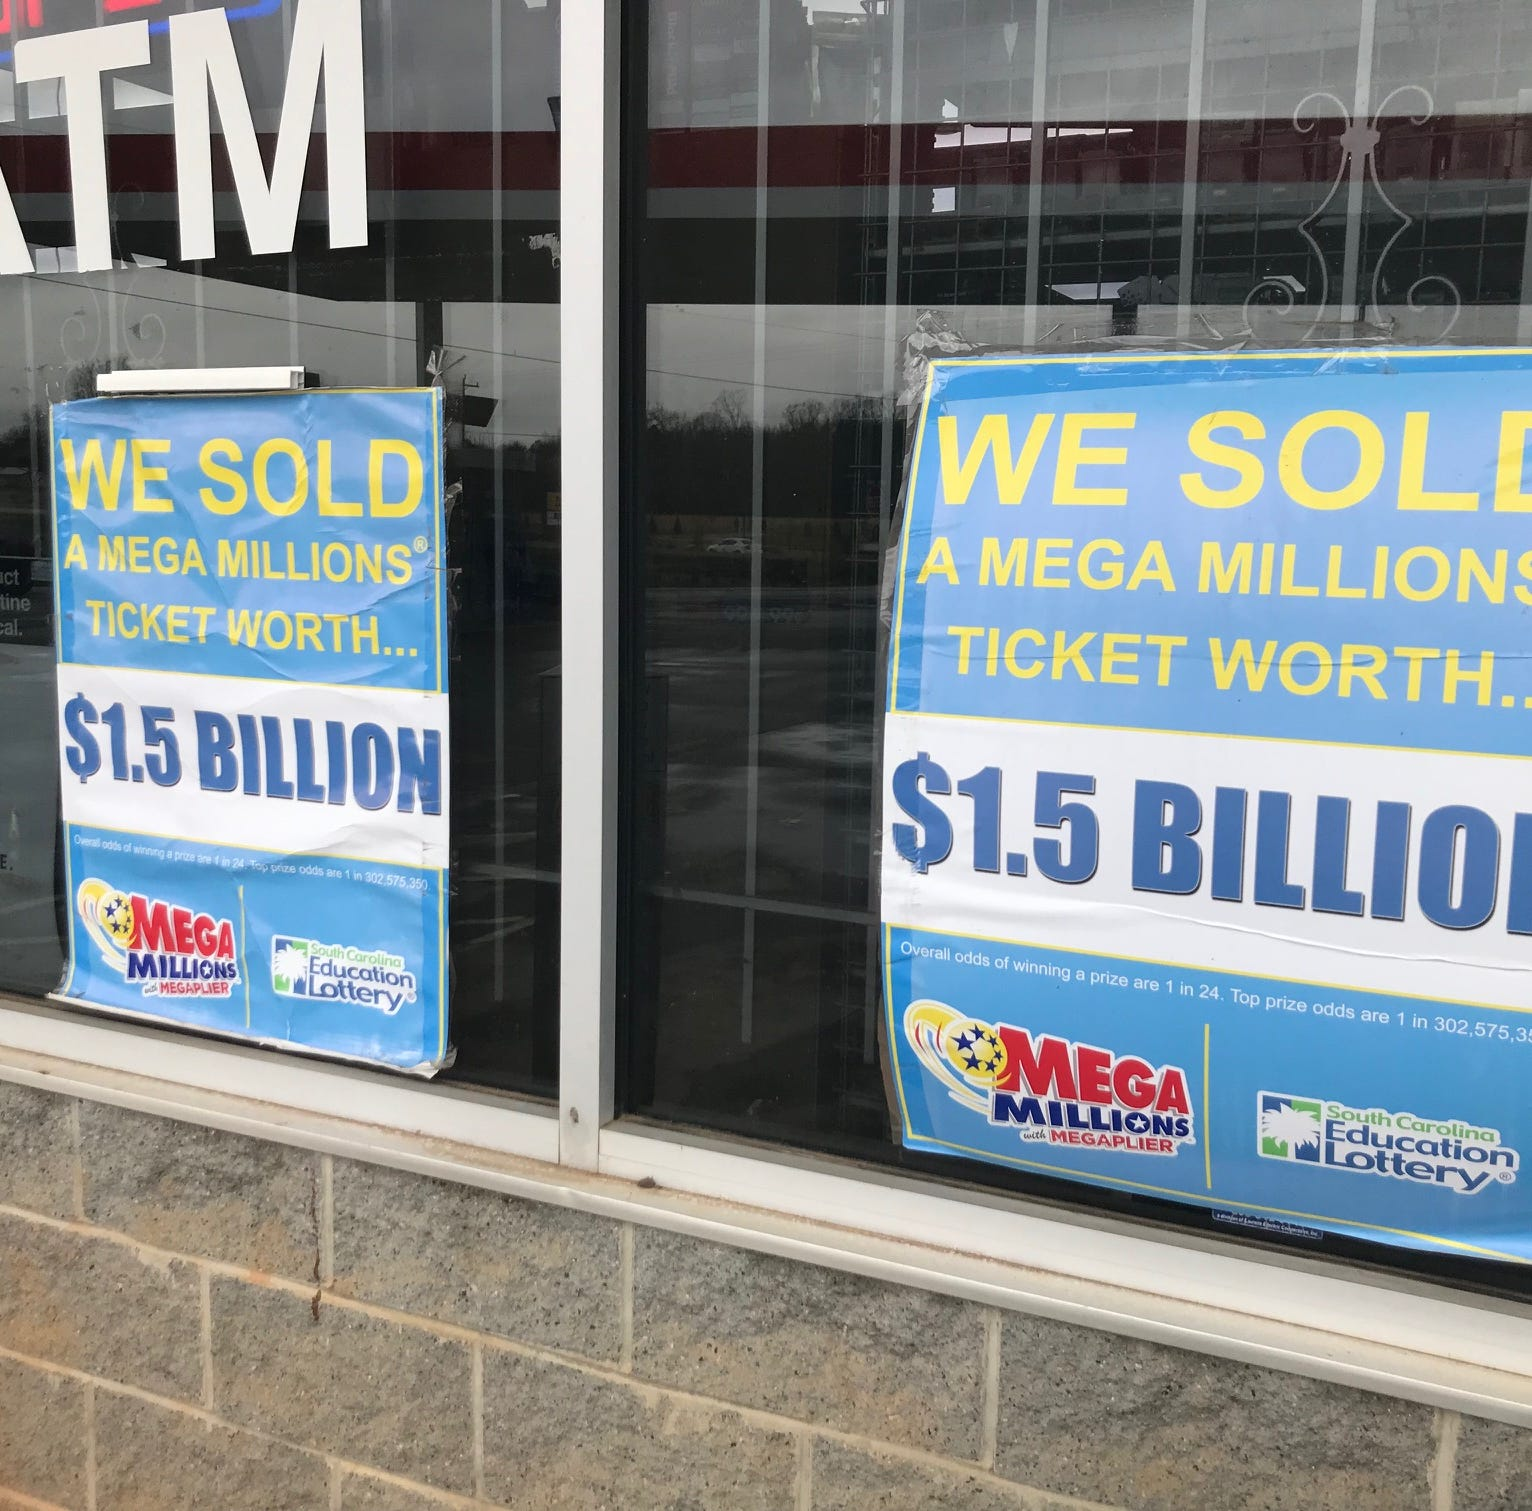 4 months later, mystery and rumors surround Mega Millions $1.5 billion jackpot